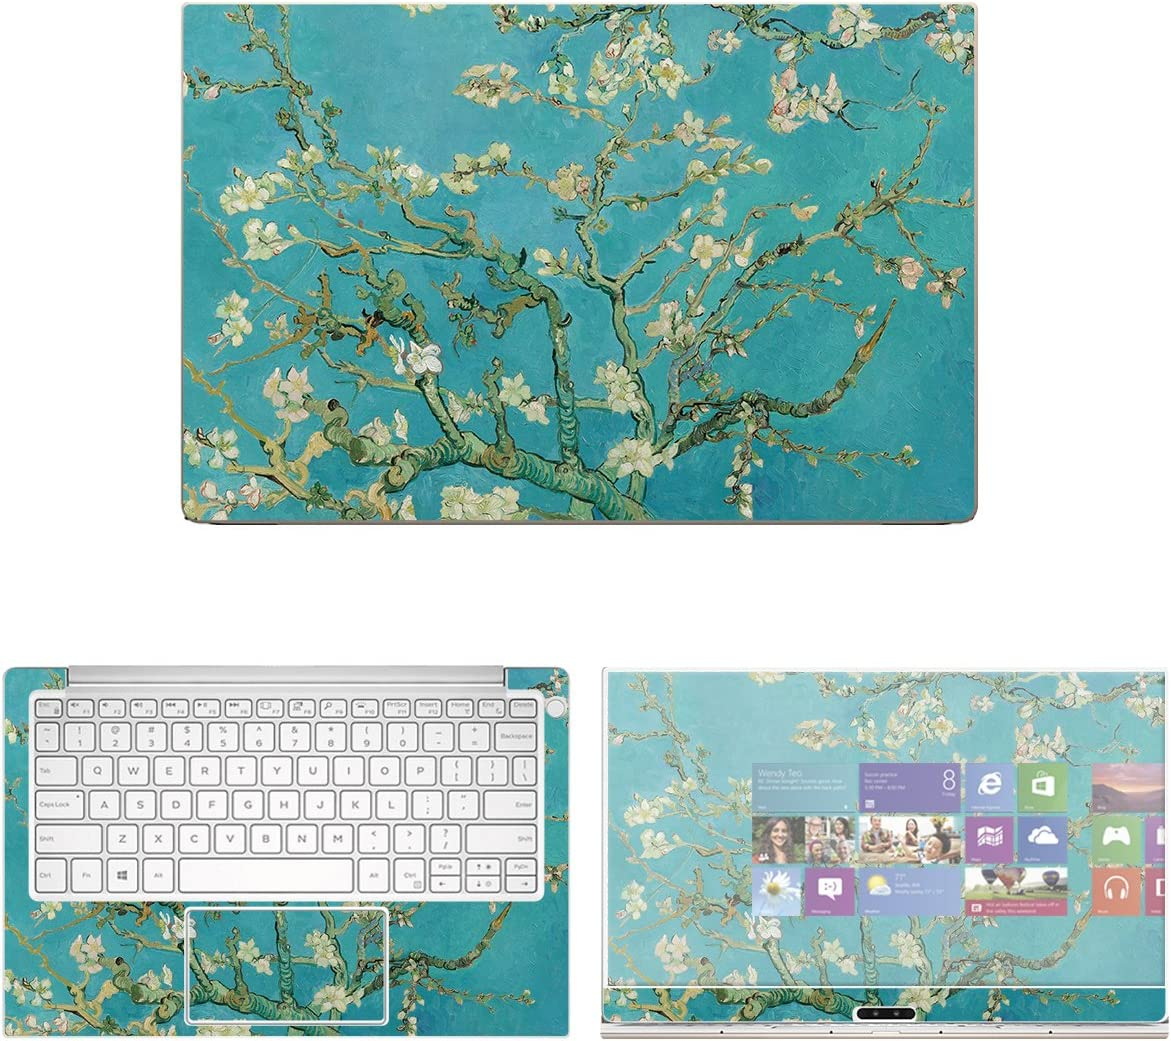 decalrus - Protective Decal Floral Skin Sticker for Dell XPS 13 9370 (13